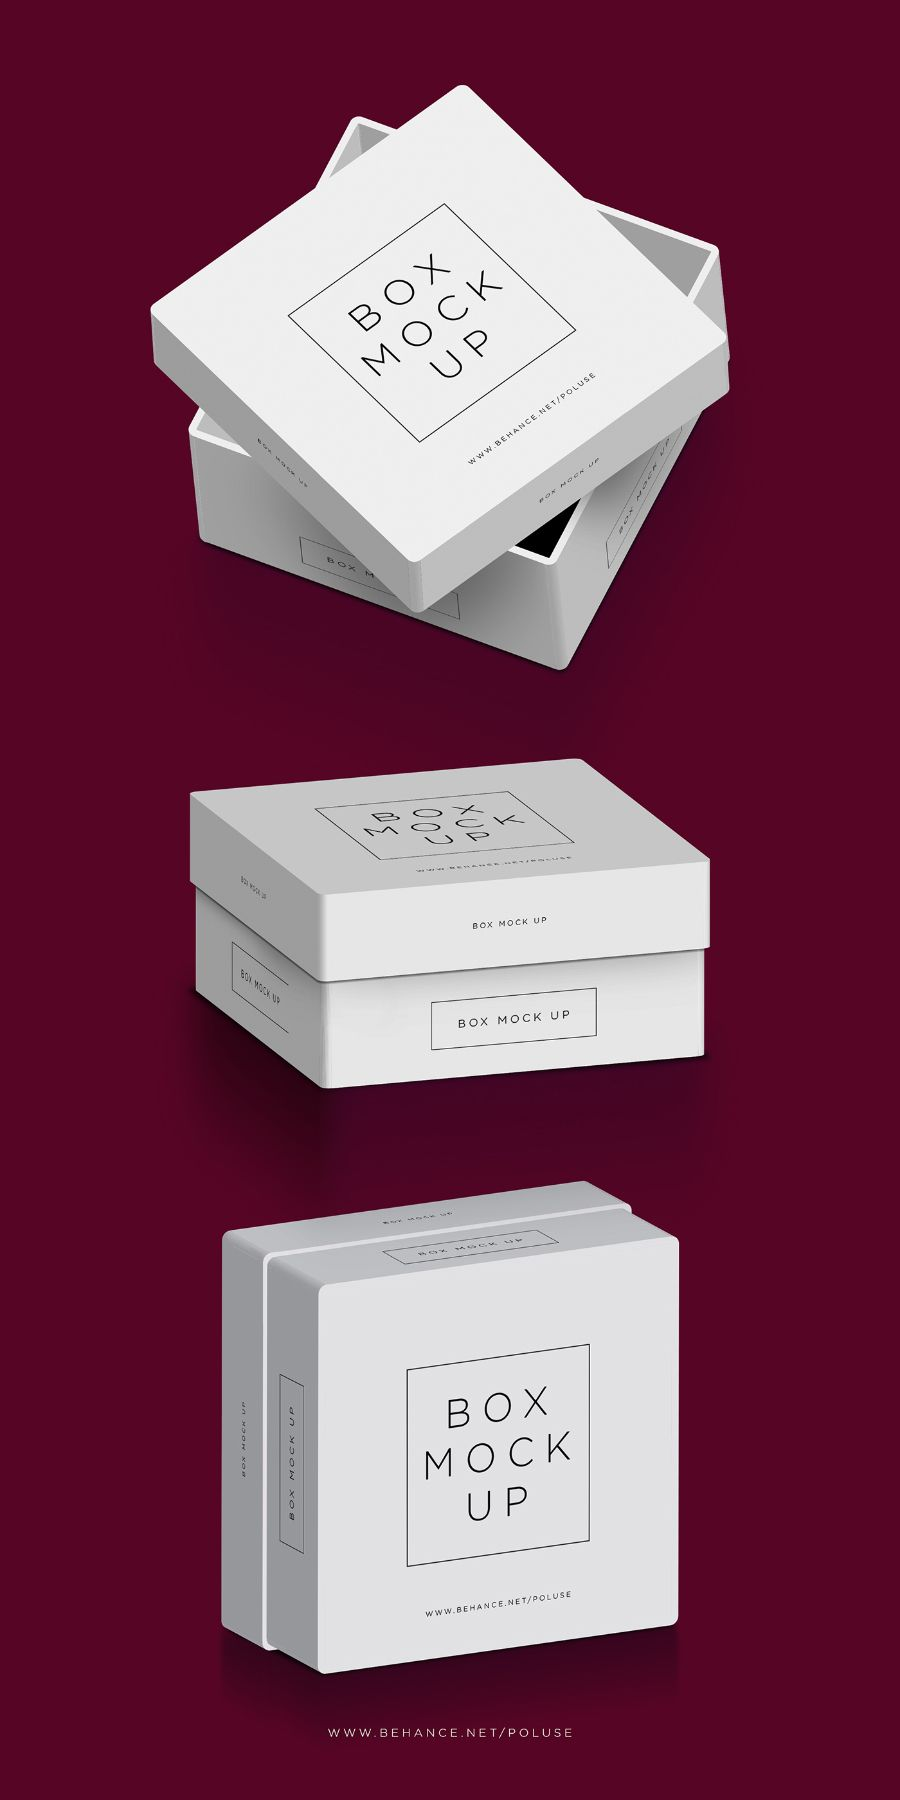 Download Free Psd Packaging Box Mockup Free Design Resources Design Mockup Free Free Packaging Mockup Box Mockup